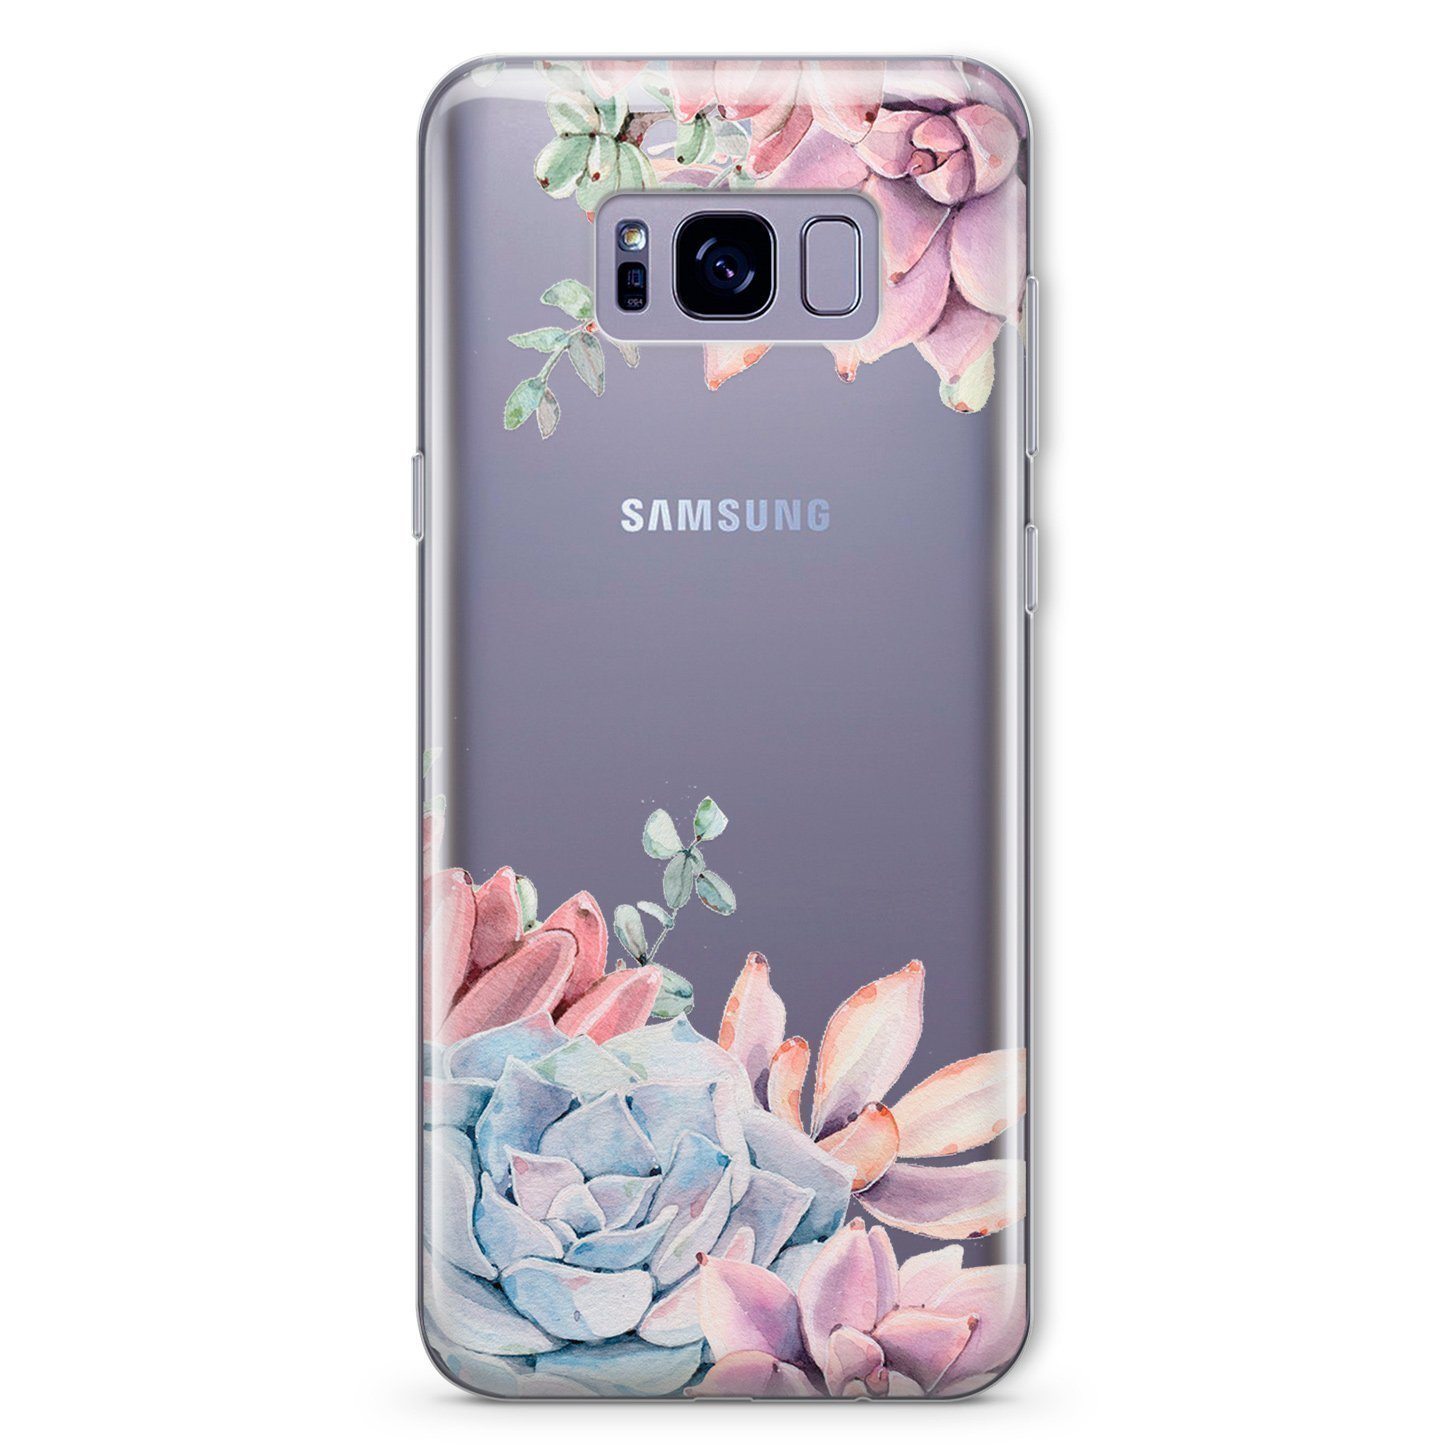 ee17e9c9bb ... Samsung Galaxy S10 S10 Plus S10e S8 S8 Plus S7 S6 S5 Edge Note 4 5 7 8  Custom Personalized Monogrammed Shockproof Samsung Cover Case Succulent  Flowers ...